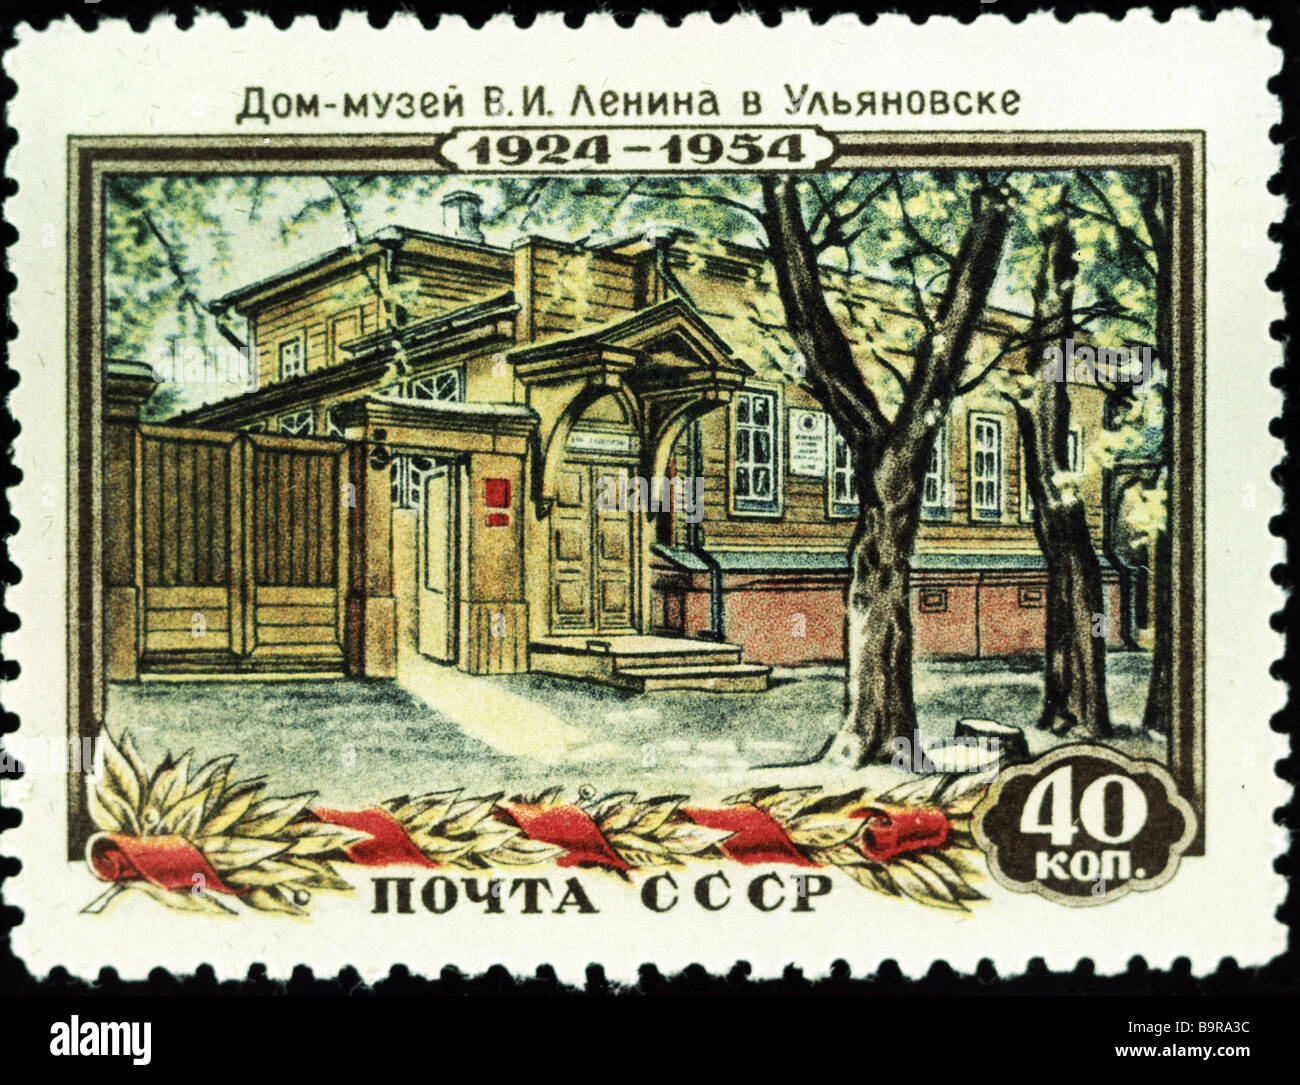 Soviet postage stamp depicting the Lenin house museum in Ulyanovsk - Stock Image